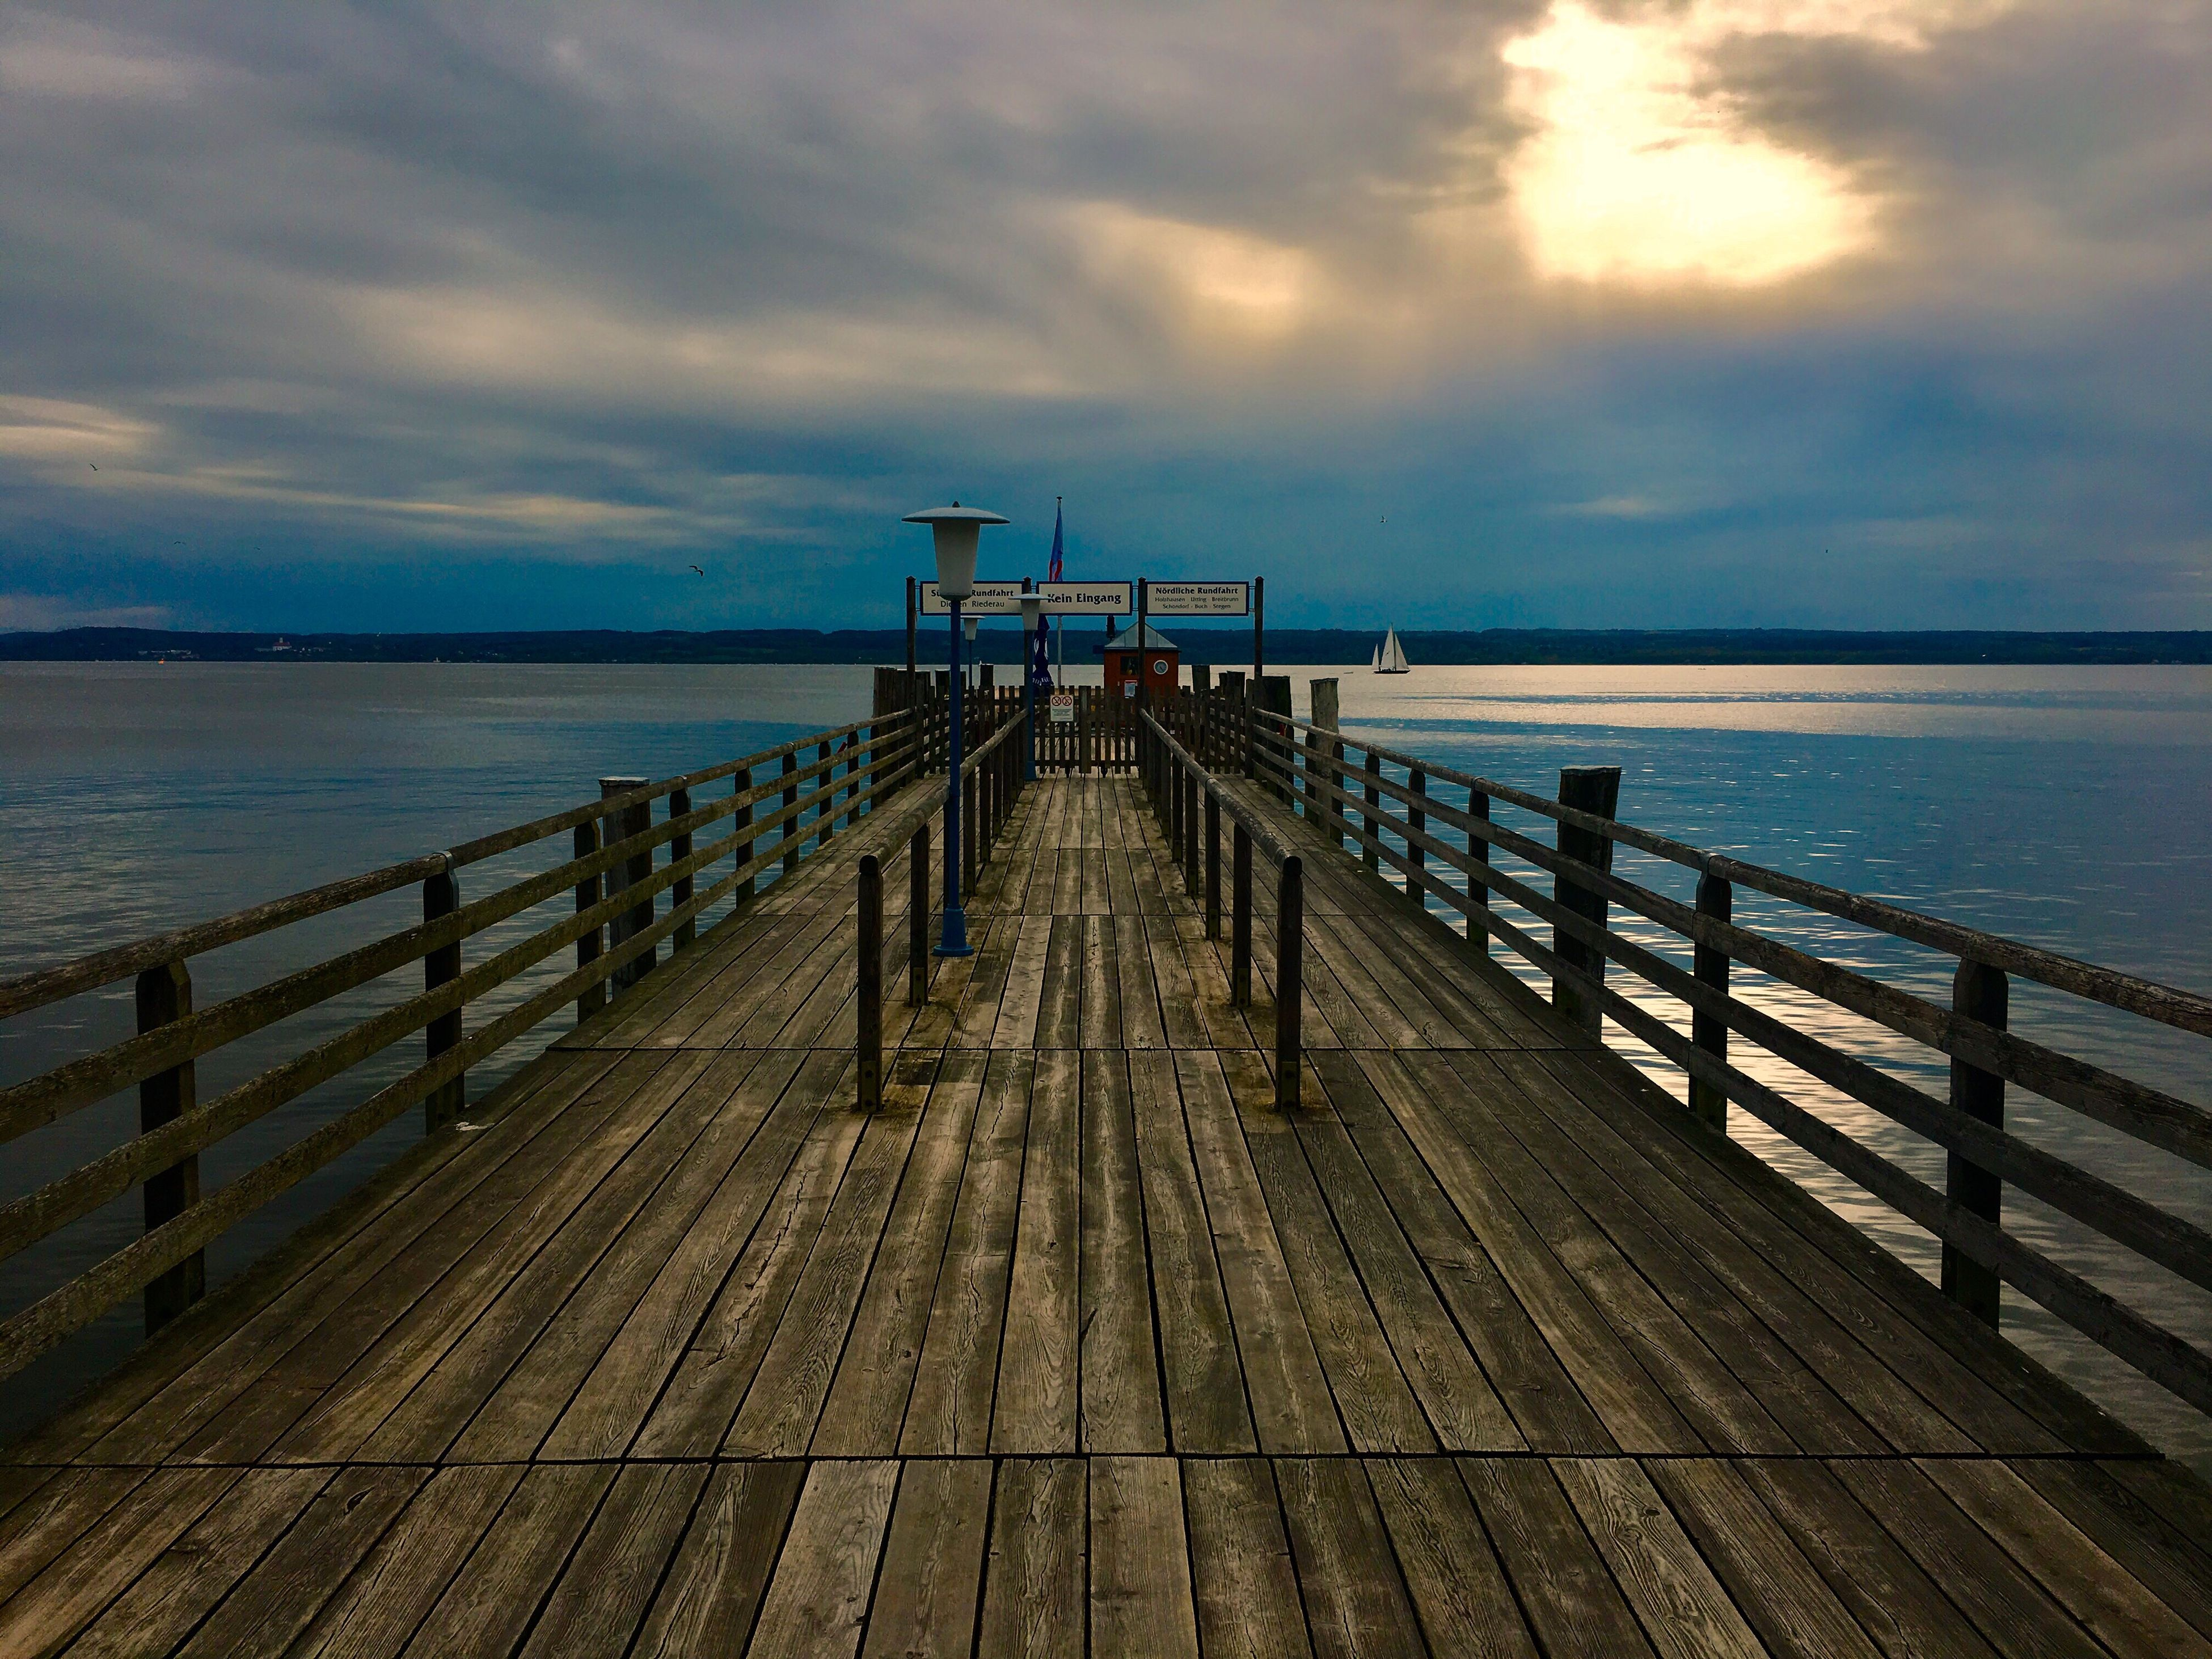 sea, water, horizon over water, pier, cloud - sky, jetty, wood - material, wood paneling, sky, nature, scenics, tranquil scene, beauty in nature, tranquility, outdoors, day, no people, sunset, built structure